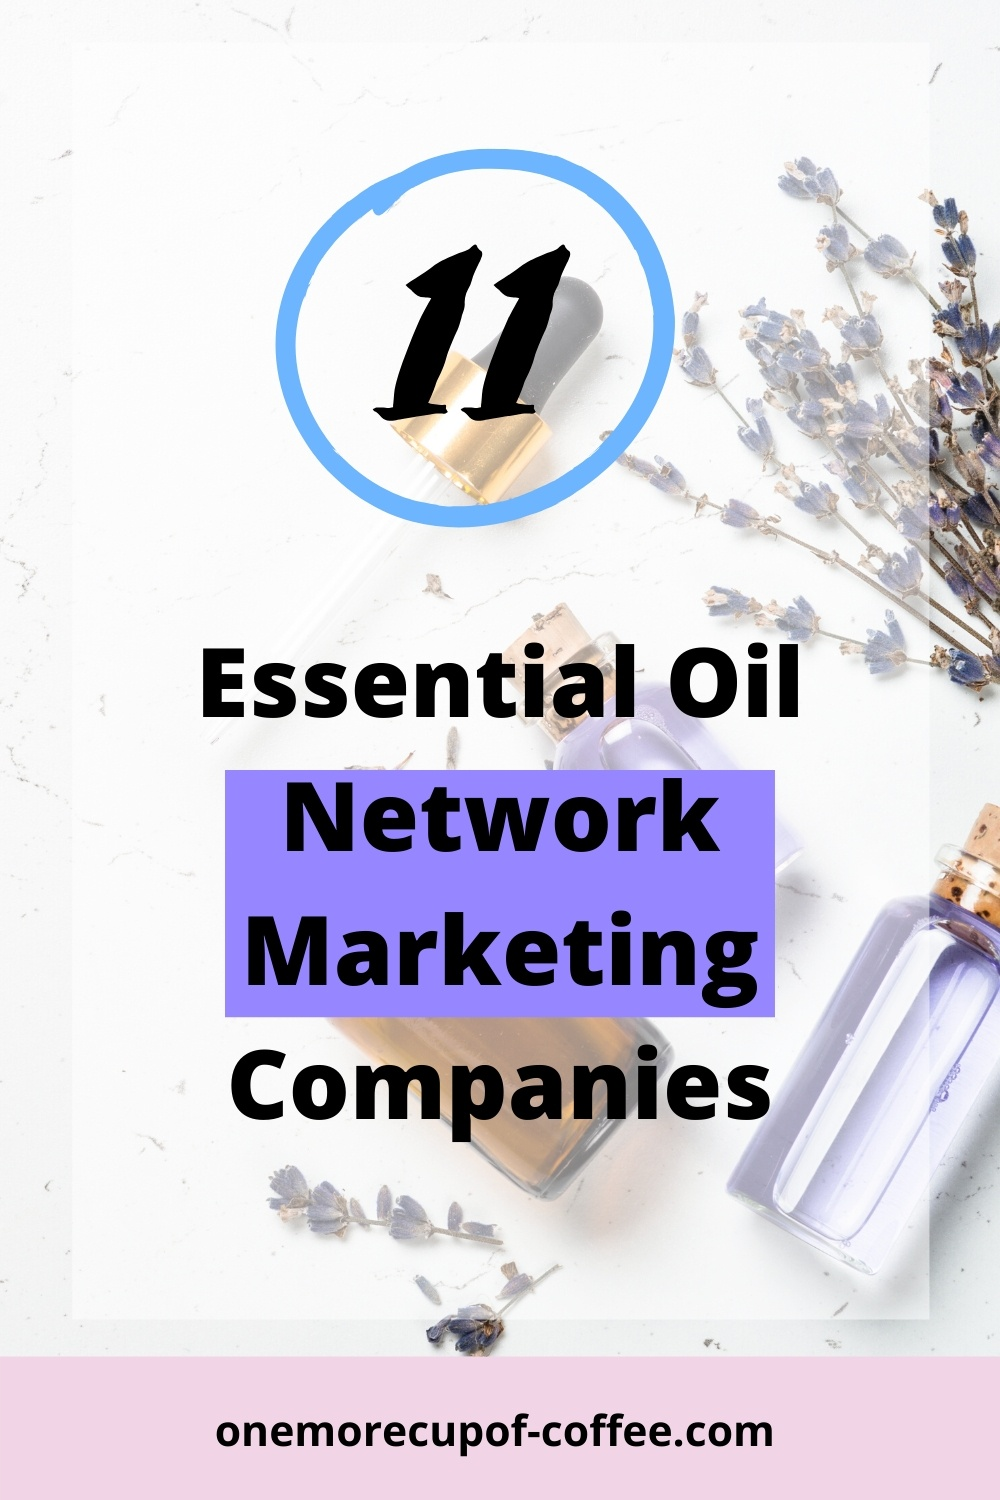 Oil bottles to represent essential oils network marketing companies